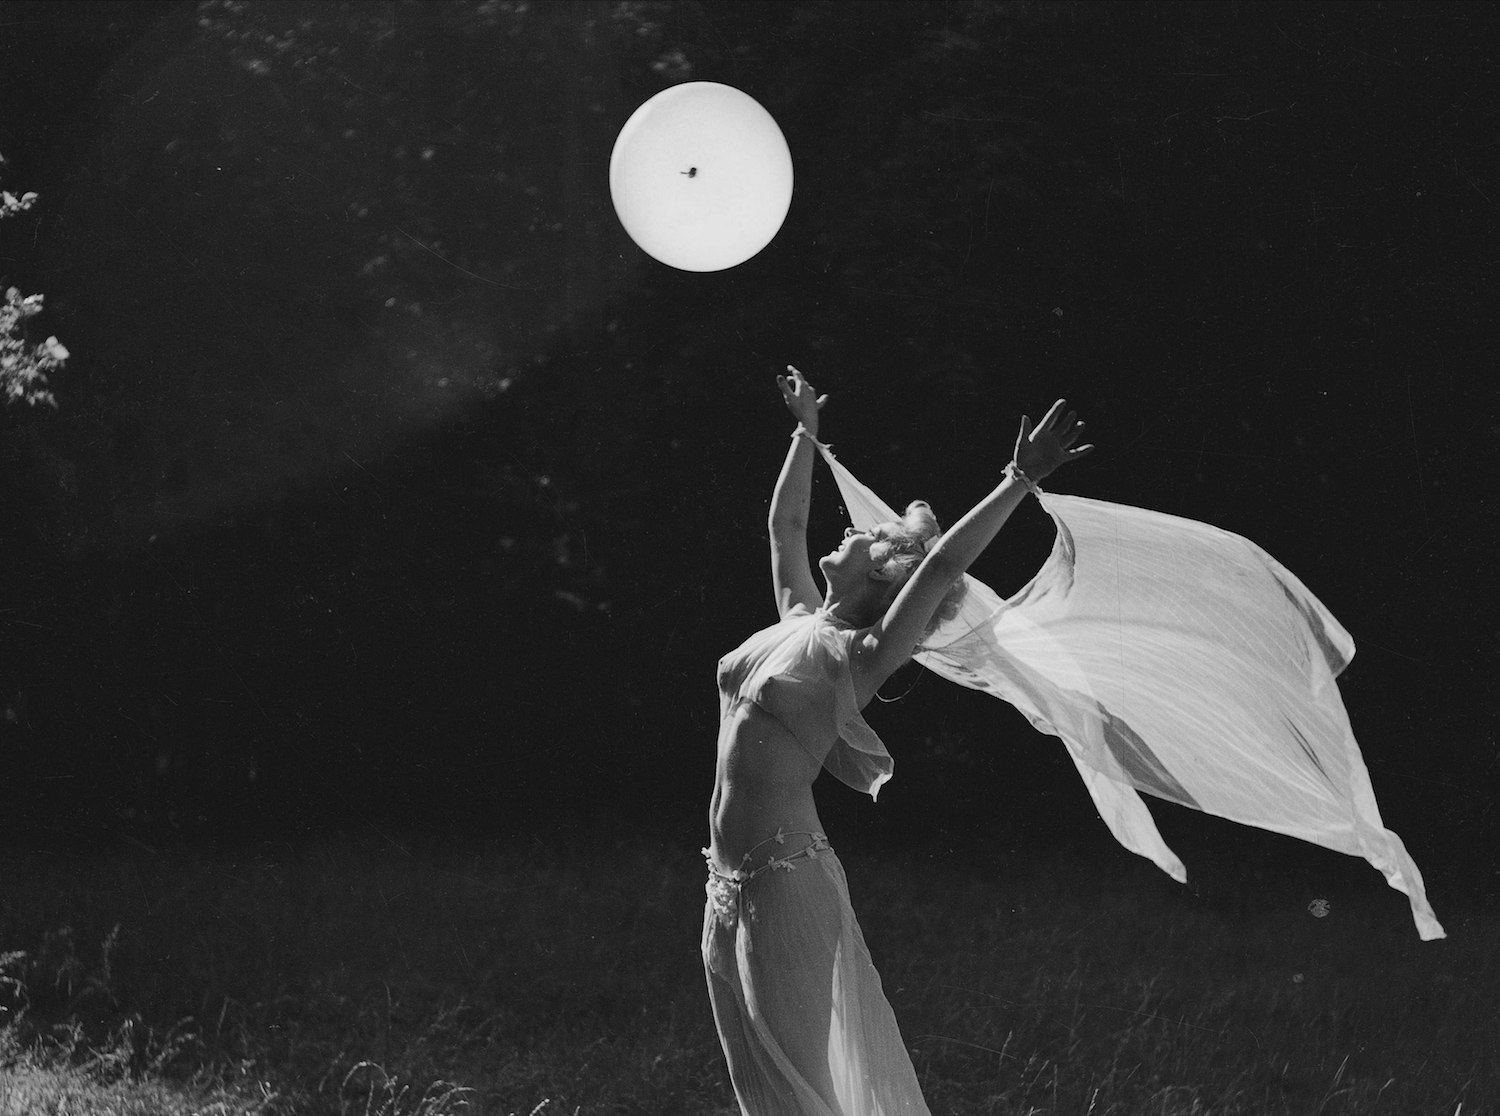 The Pisces Full Moon is asking you to swan-dive into your dreams